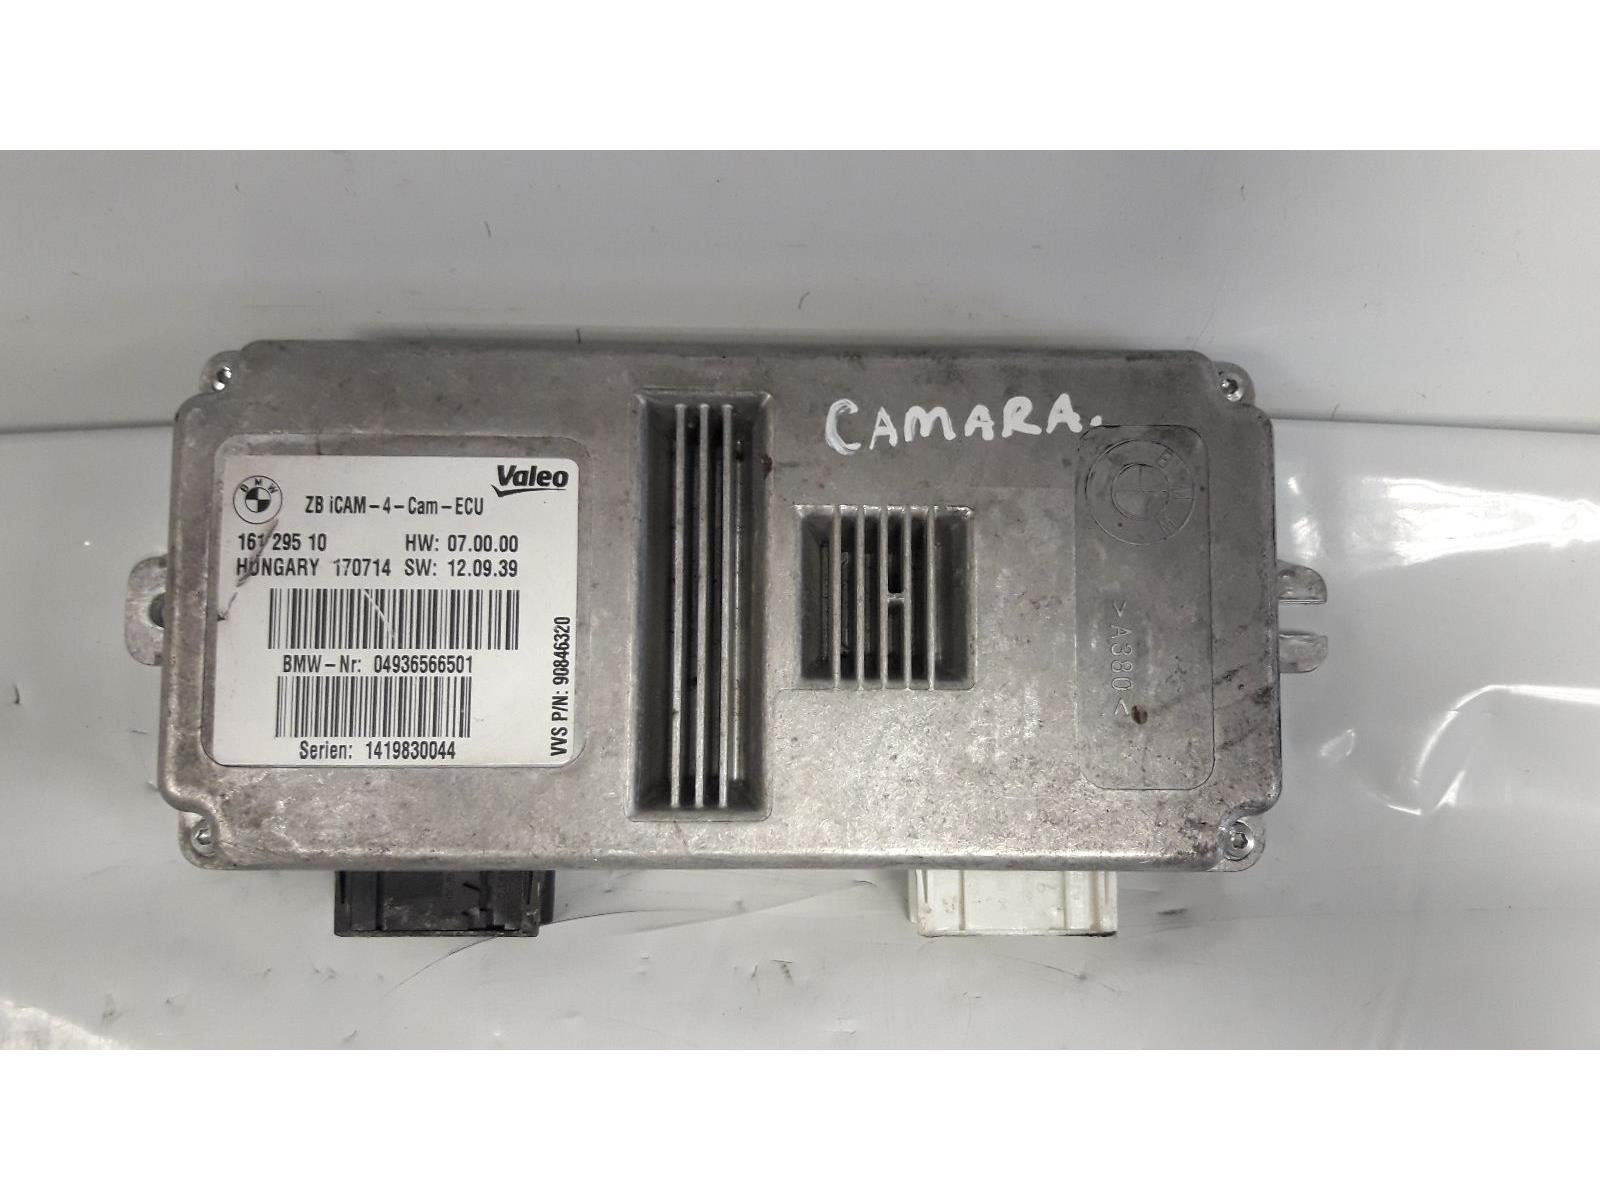 BMW camera  untested may need coding in  zb icam-4-cam-ecu